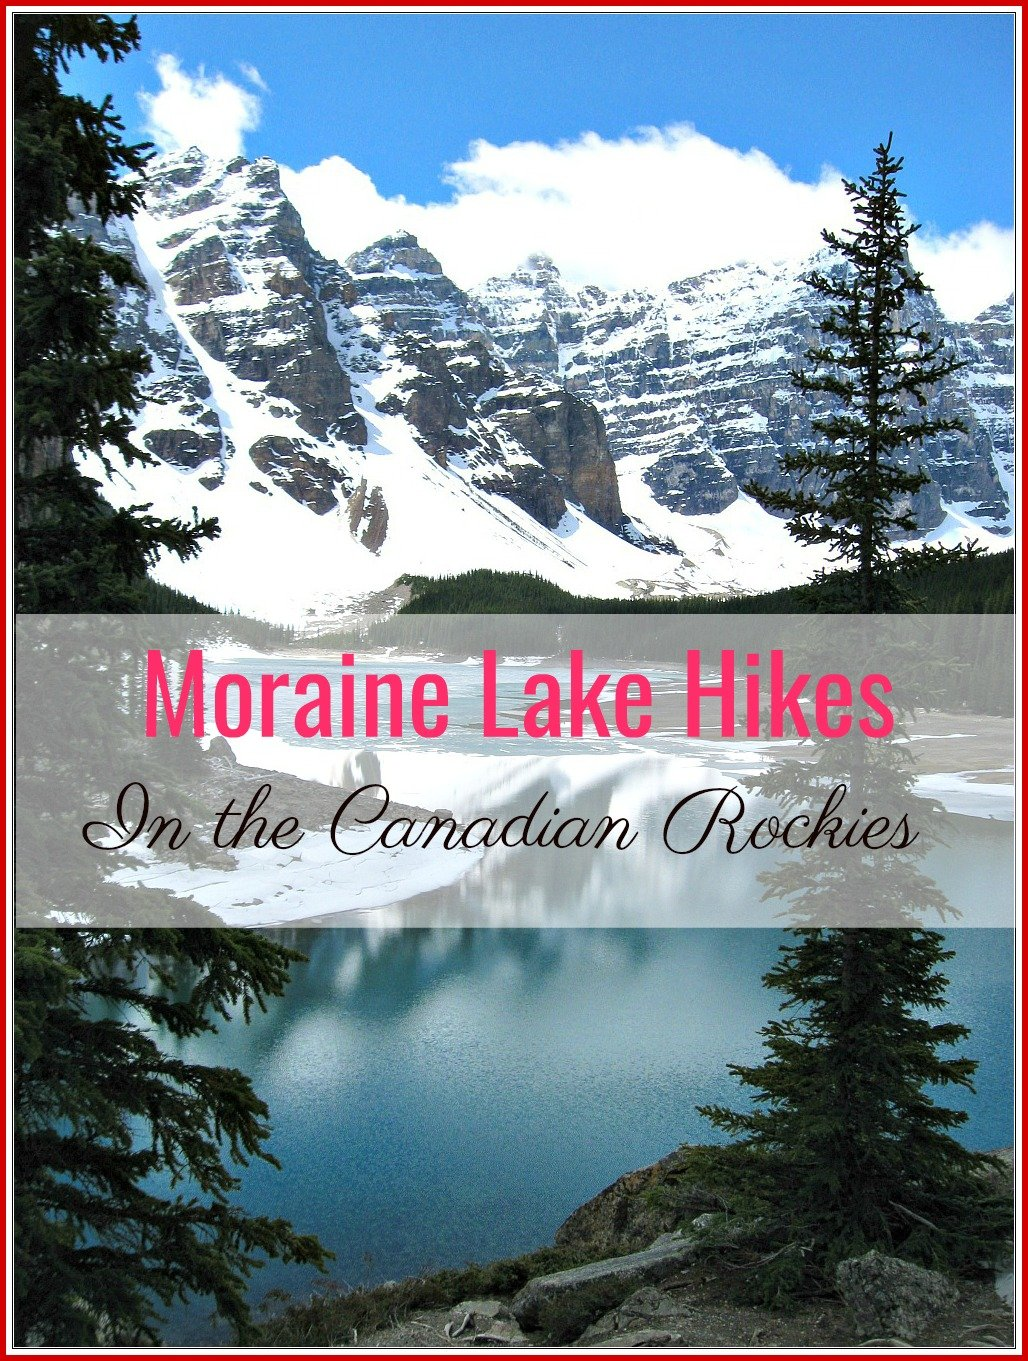 Moraine Lake Hike in the Canadian Rockies